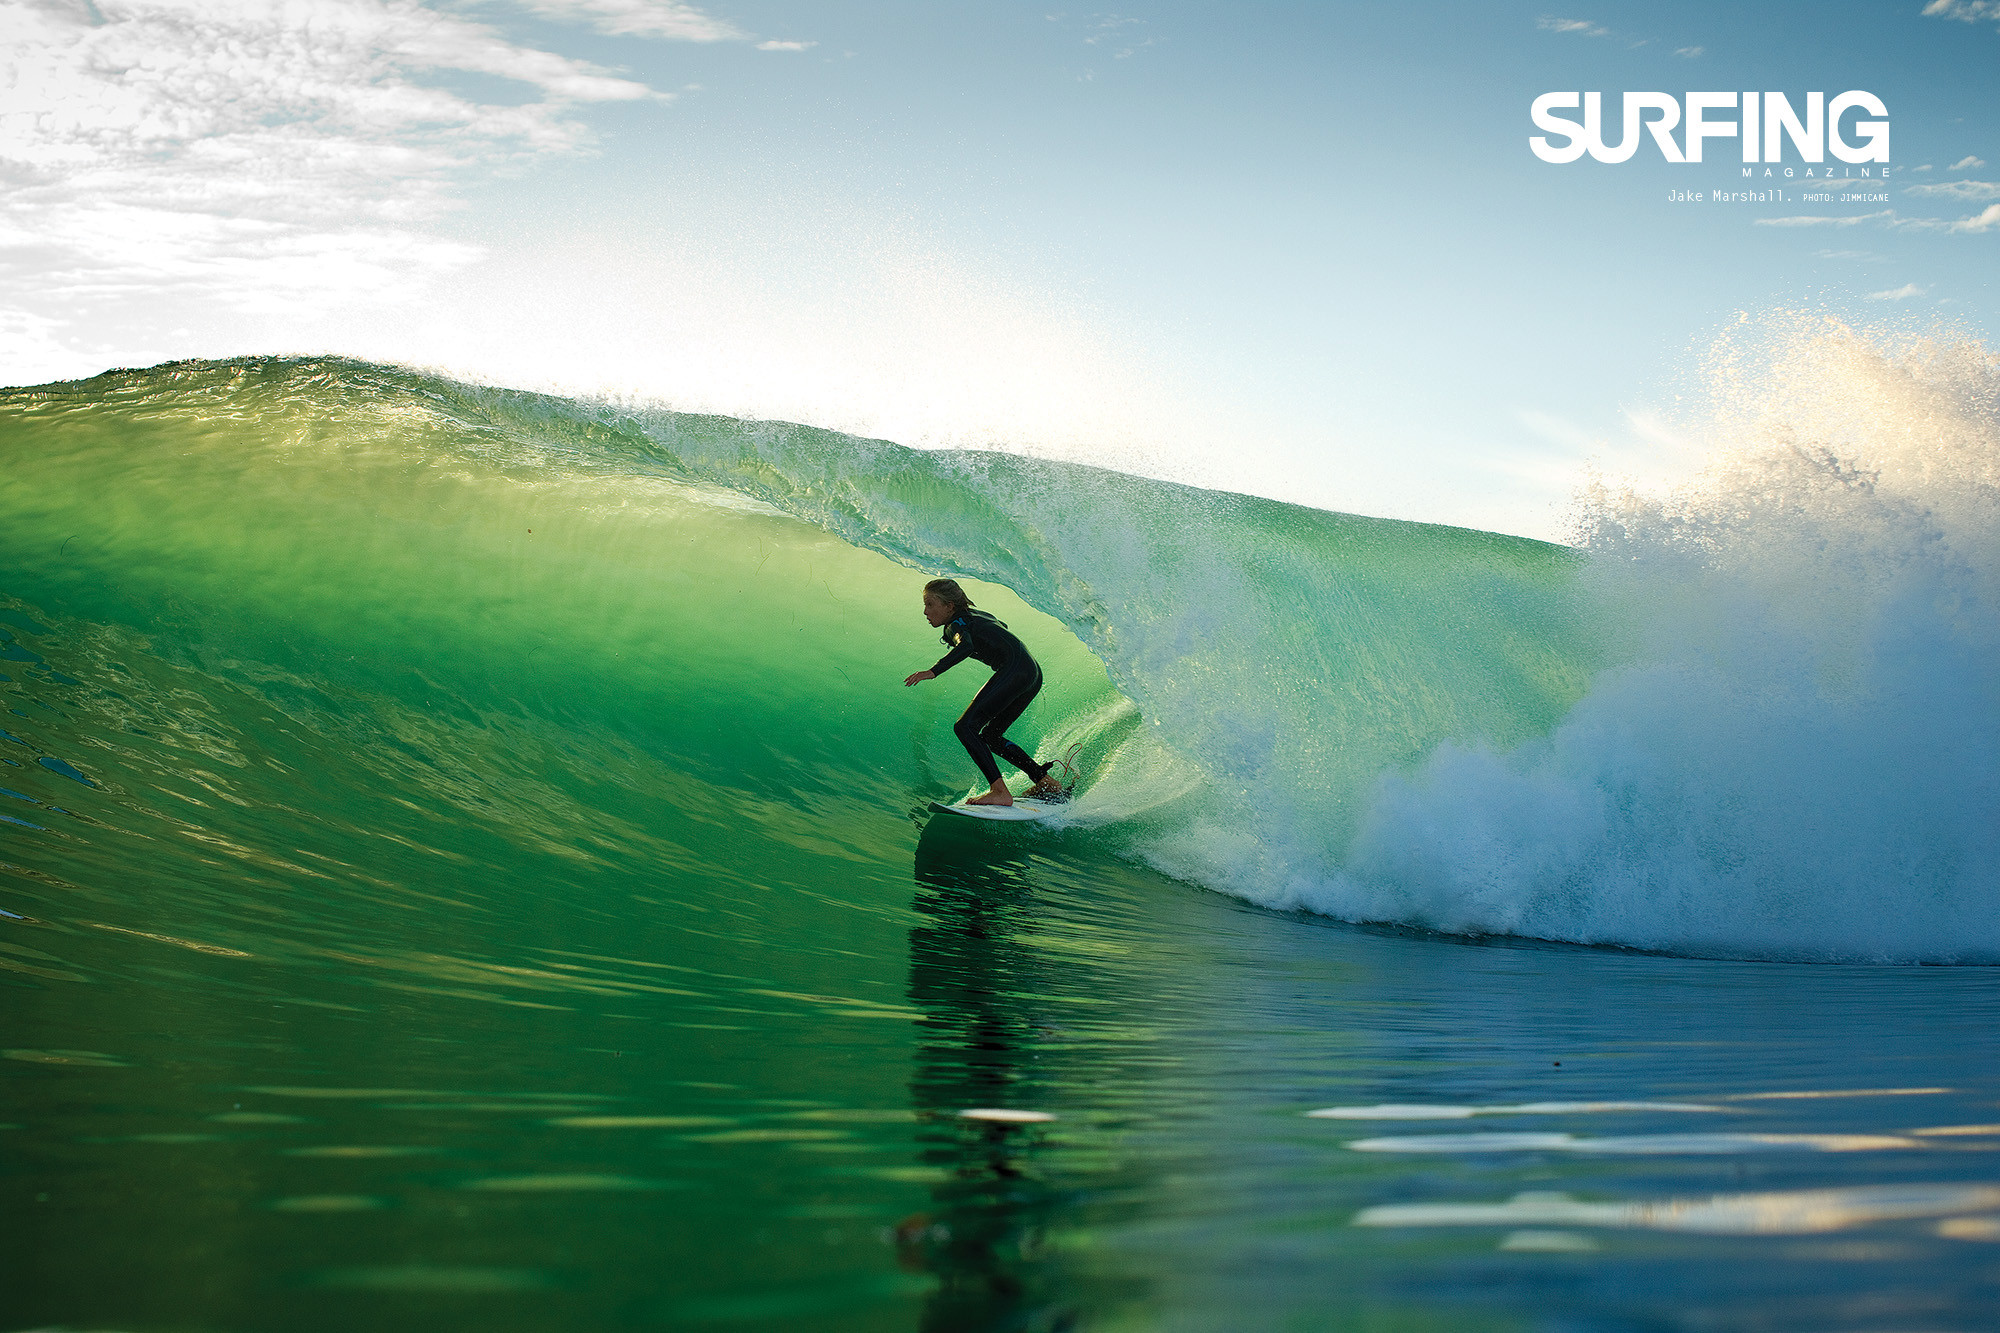 100% Quality HD Surfing Wallpapers | Background ID:6445713